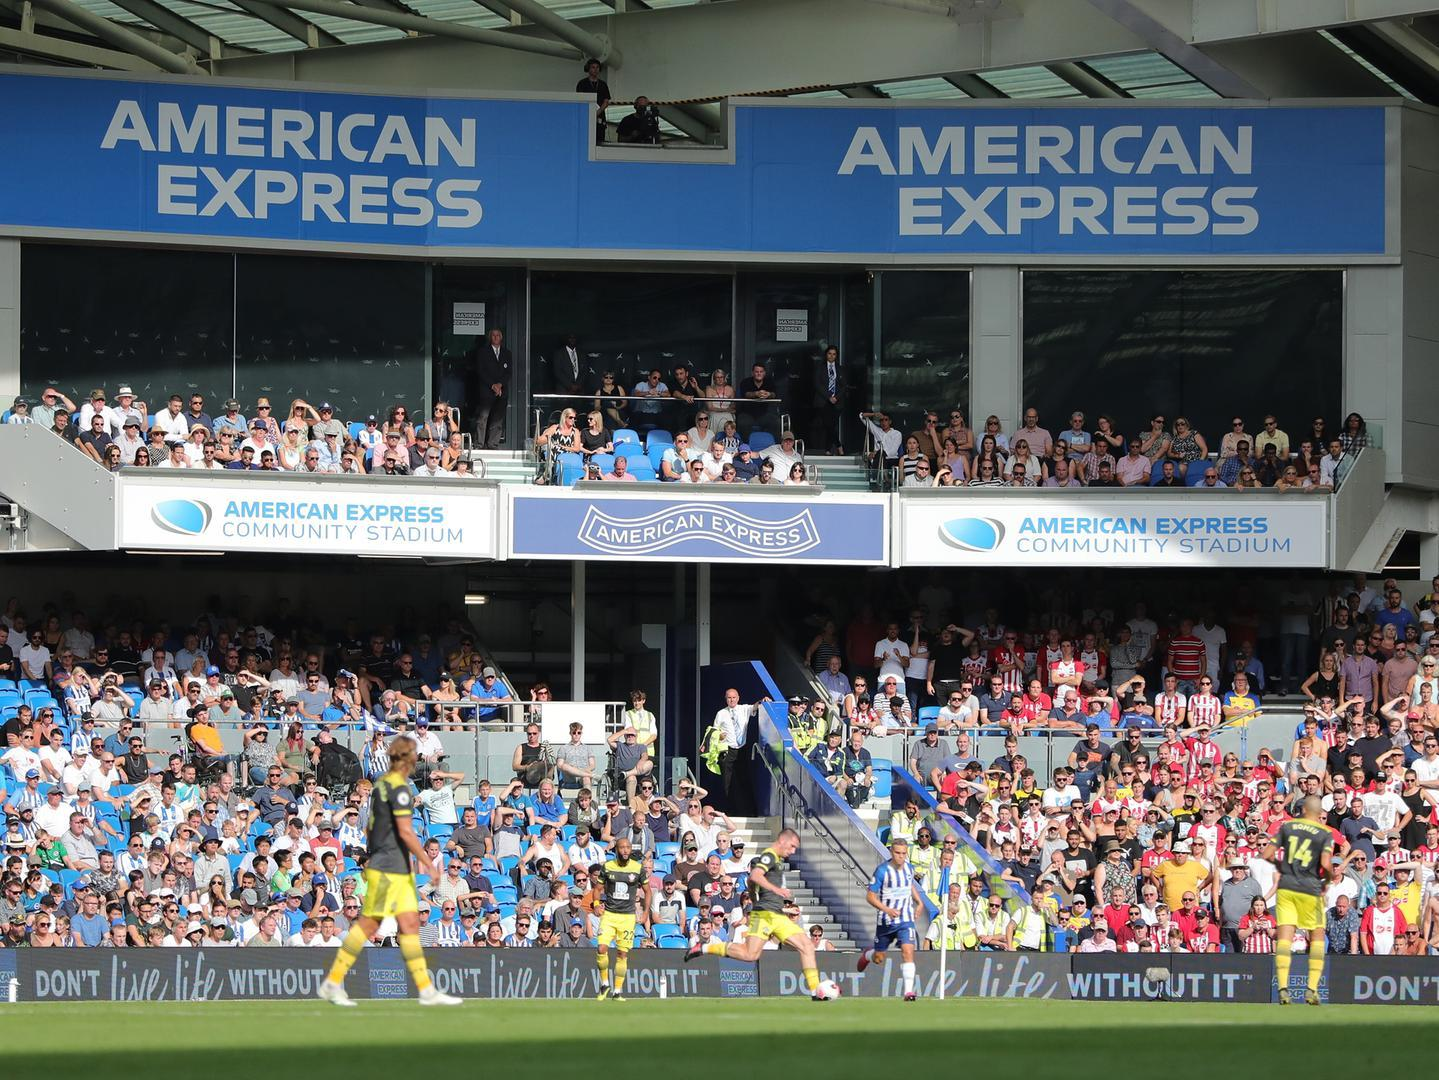 Brighton & Hove Albion gets behind American Express initiative for youngsters who want to work in football